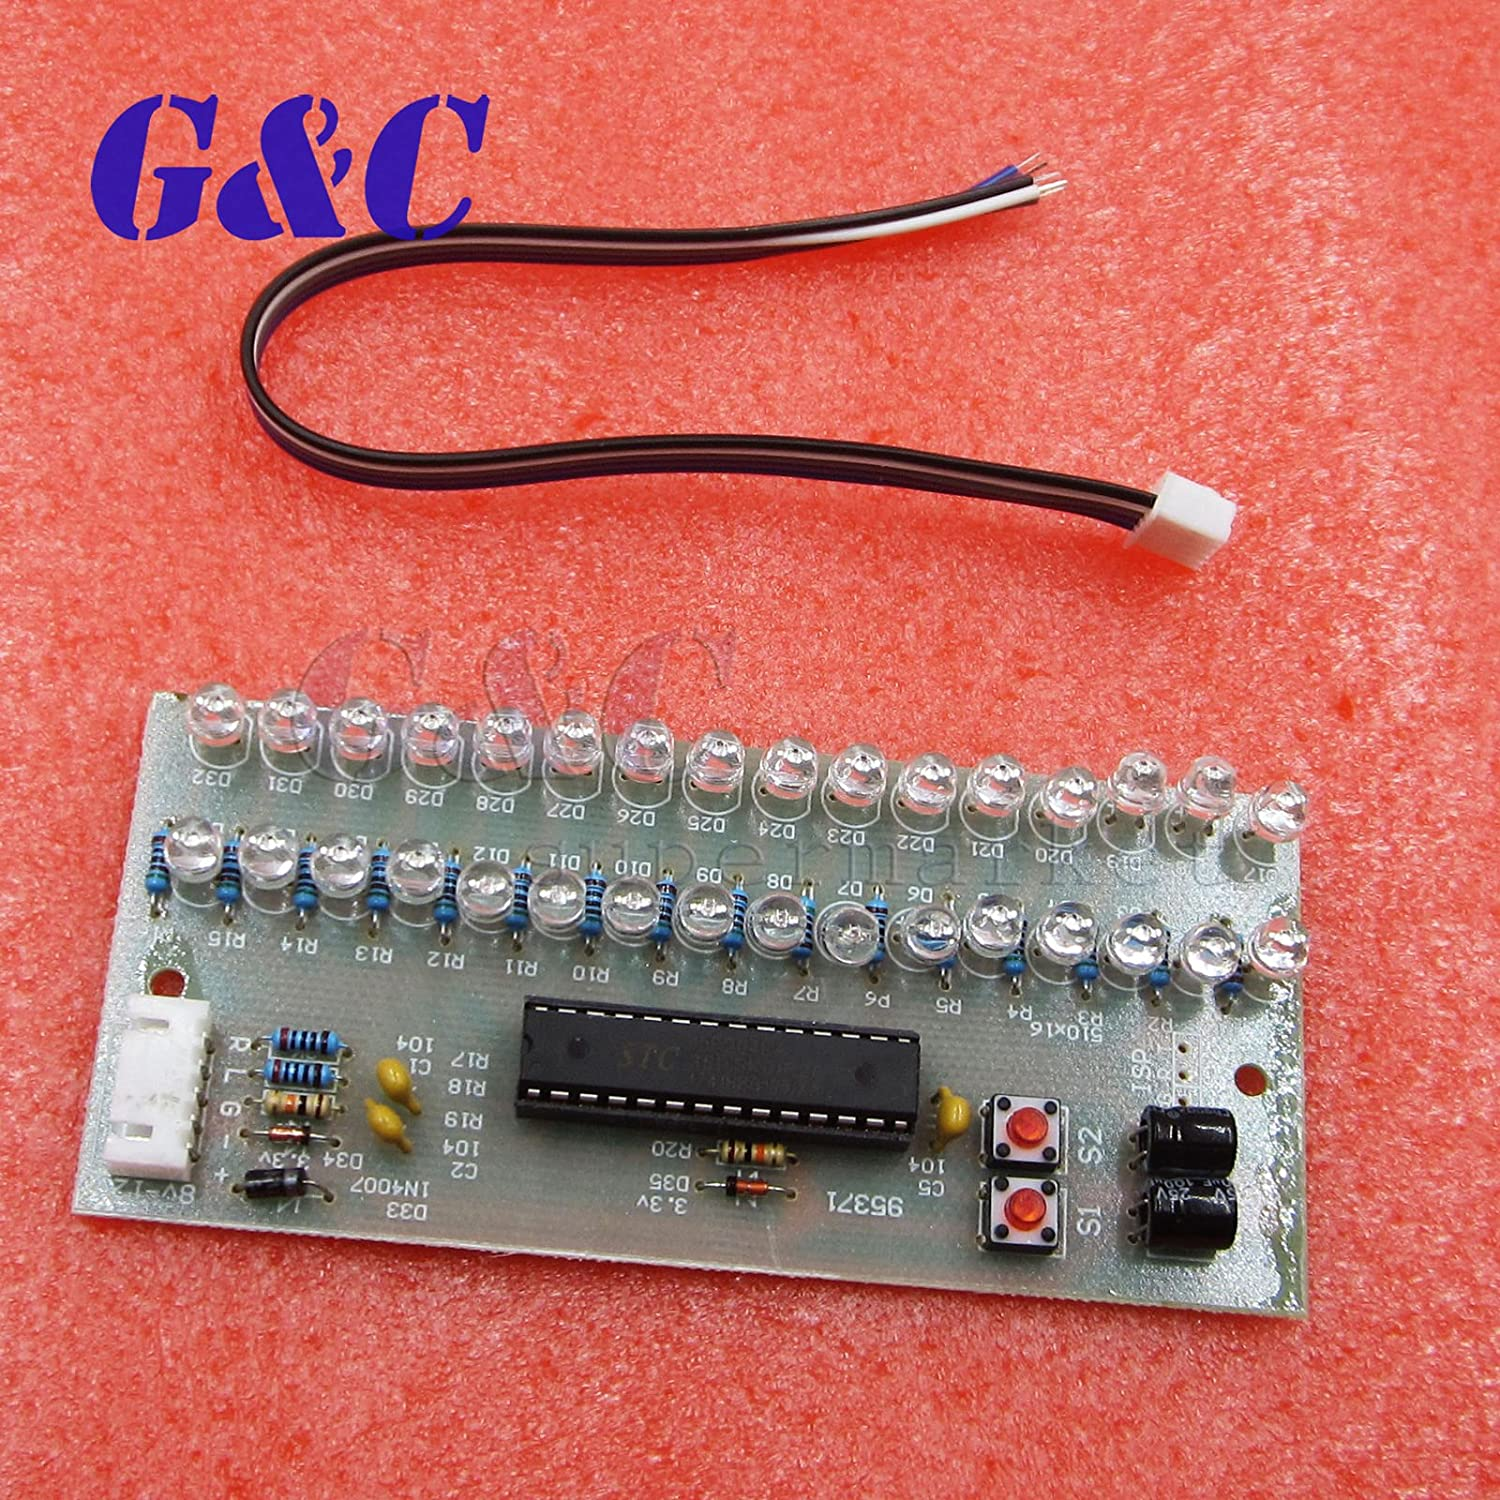 Ast Works Green Mcu Meter Level Indicator Module Vu Board 16 Led Lm3915 Not Working Properly Electrical Engineering Dual Channel Car Motorbike